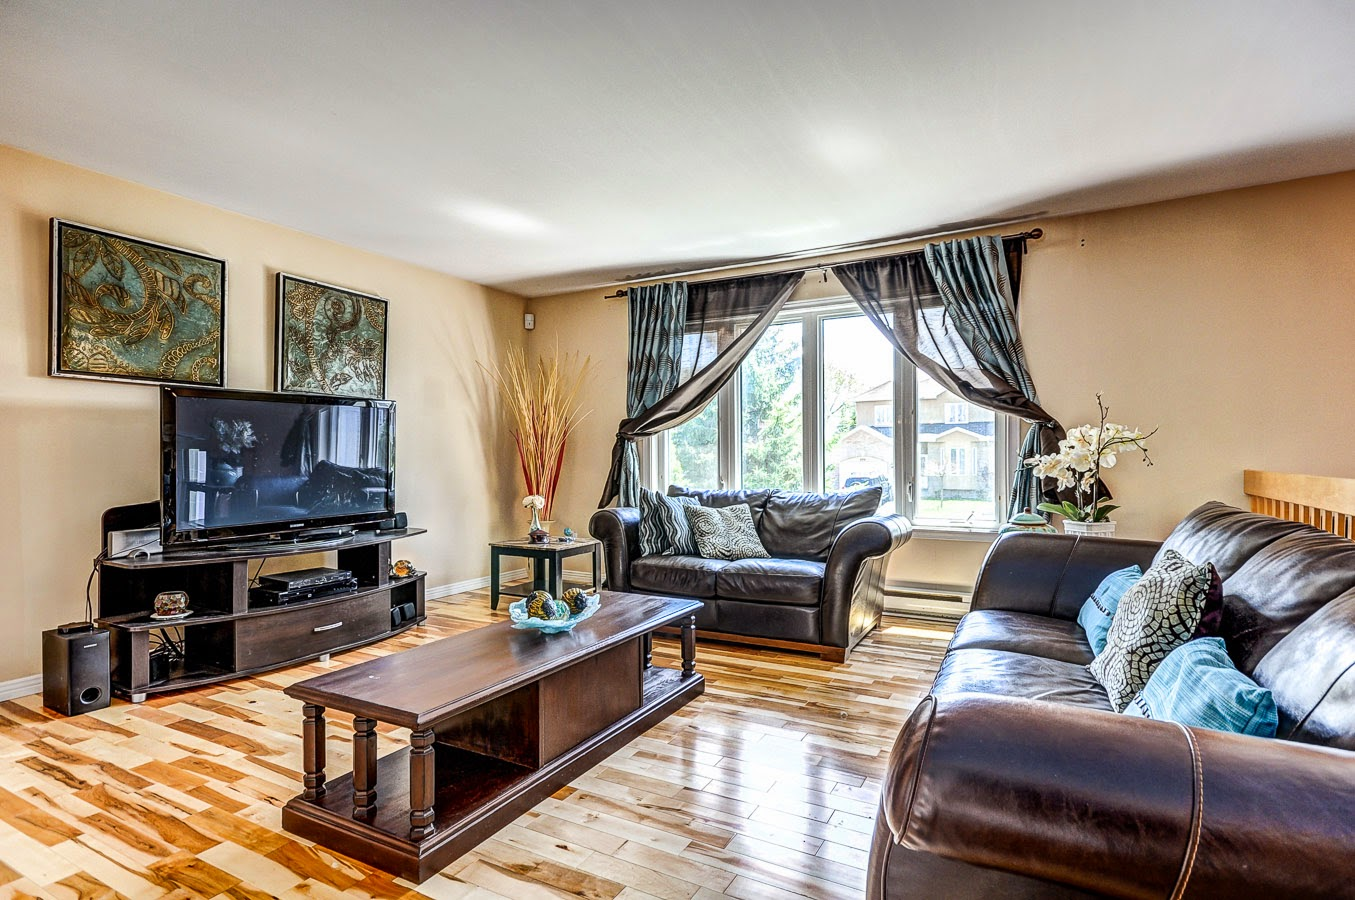 http://www.remax-quebec.com/fr/maison-a-vendre-outaouais/av-des-tilleuls-aylmer-23316834.rmx?fromsearch=agentListings_17275